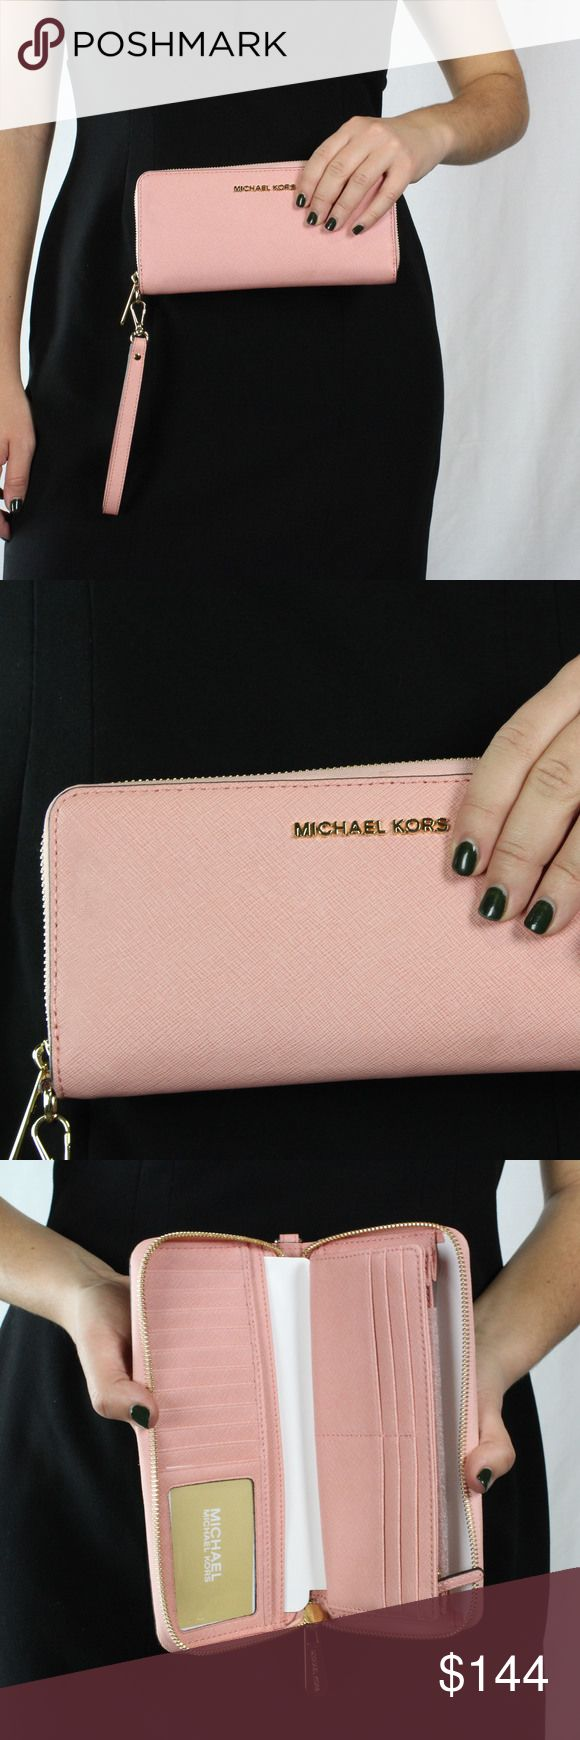 Women's Pink Michael Kors Wrist Wallet This pink Michael Kors wallet has a lot of space for your cards and it even has a zippable pouch where you can keep change and 5 other spots where you can keep cash and other thin items. So not only is it cute but it's also very spacious, which makes it a great item to have. SKU in warehouse is # 1219 Michael Kors Bags Clutches & Wristlets